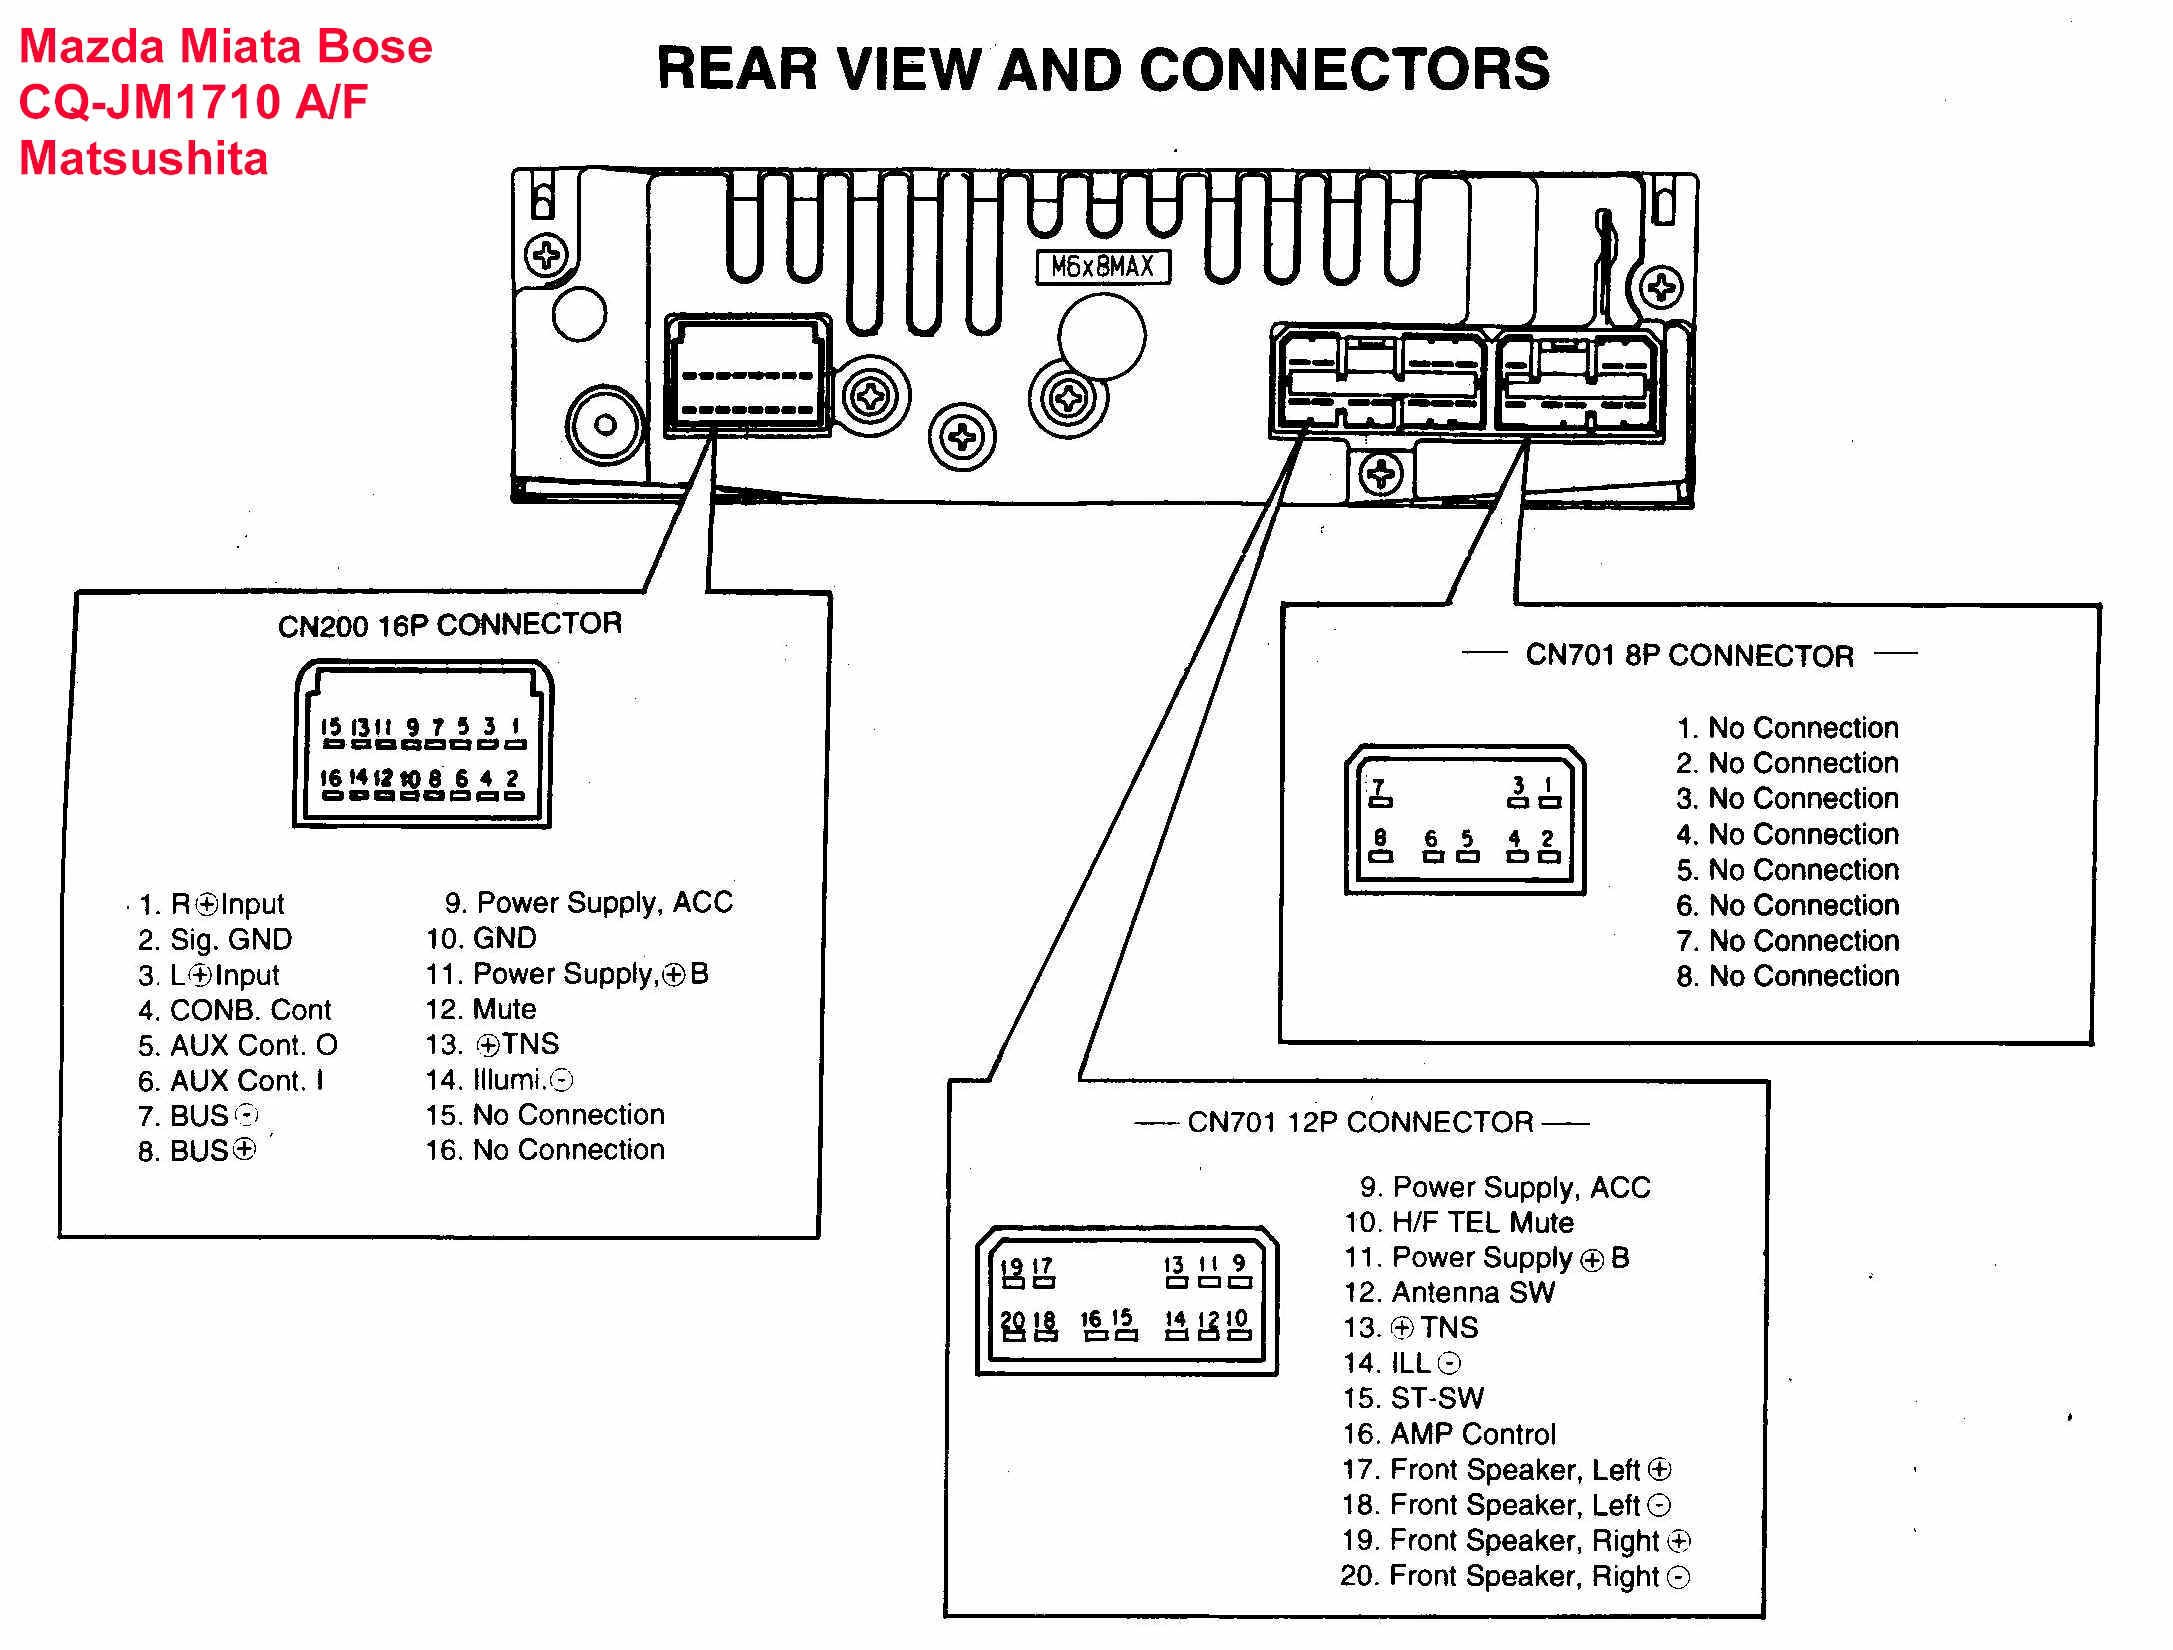 Tqm Diagram additionally Sony Cd Player Cdxgt320 User Guide Manualsonline   In Cdx Gt320 Wiring Diagram also 436580597 moreover Pioneer Deck Wire Diagram besides Sony Cdx L410x Wiring Diagram. on sony xplod deck wiring diagram